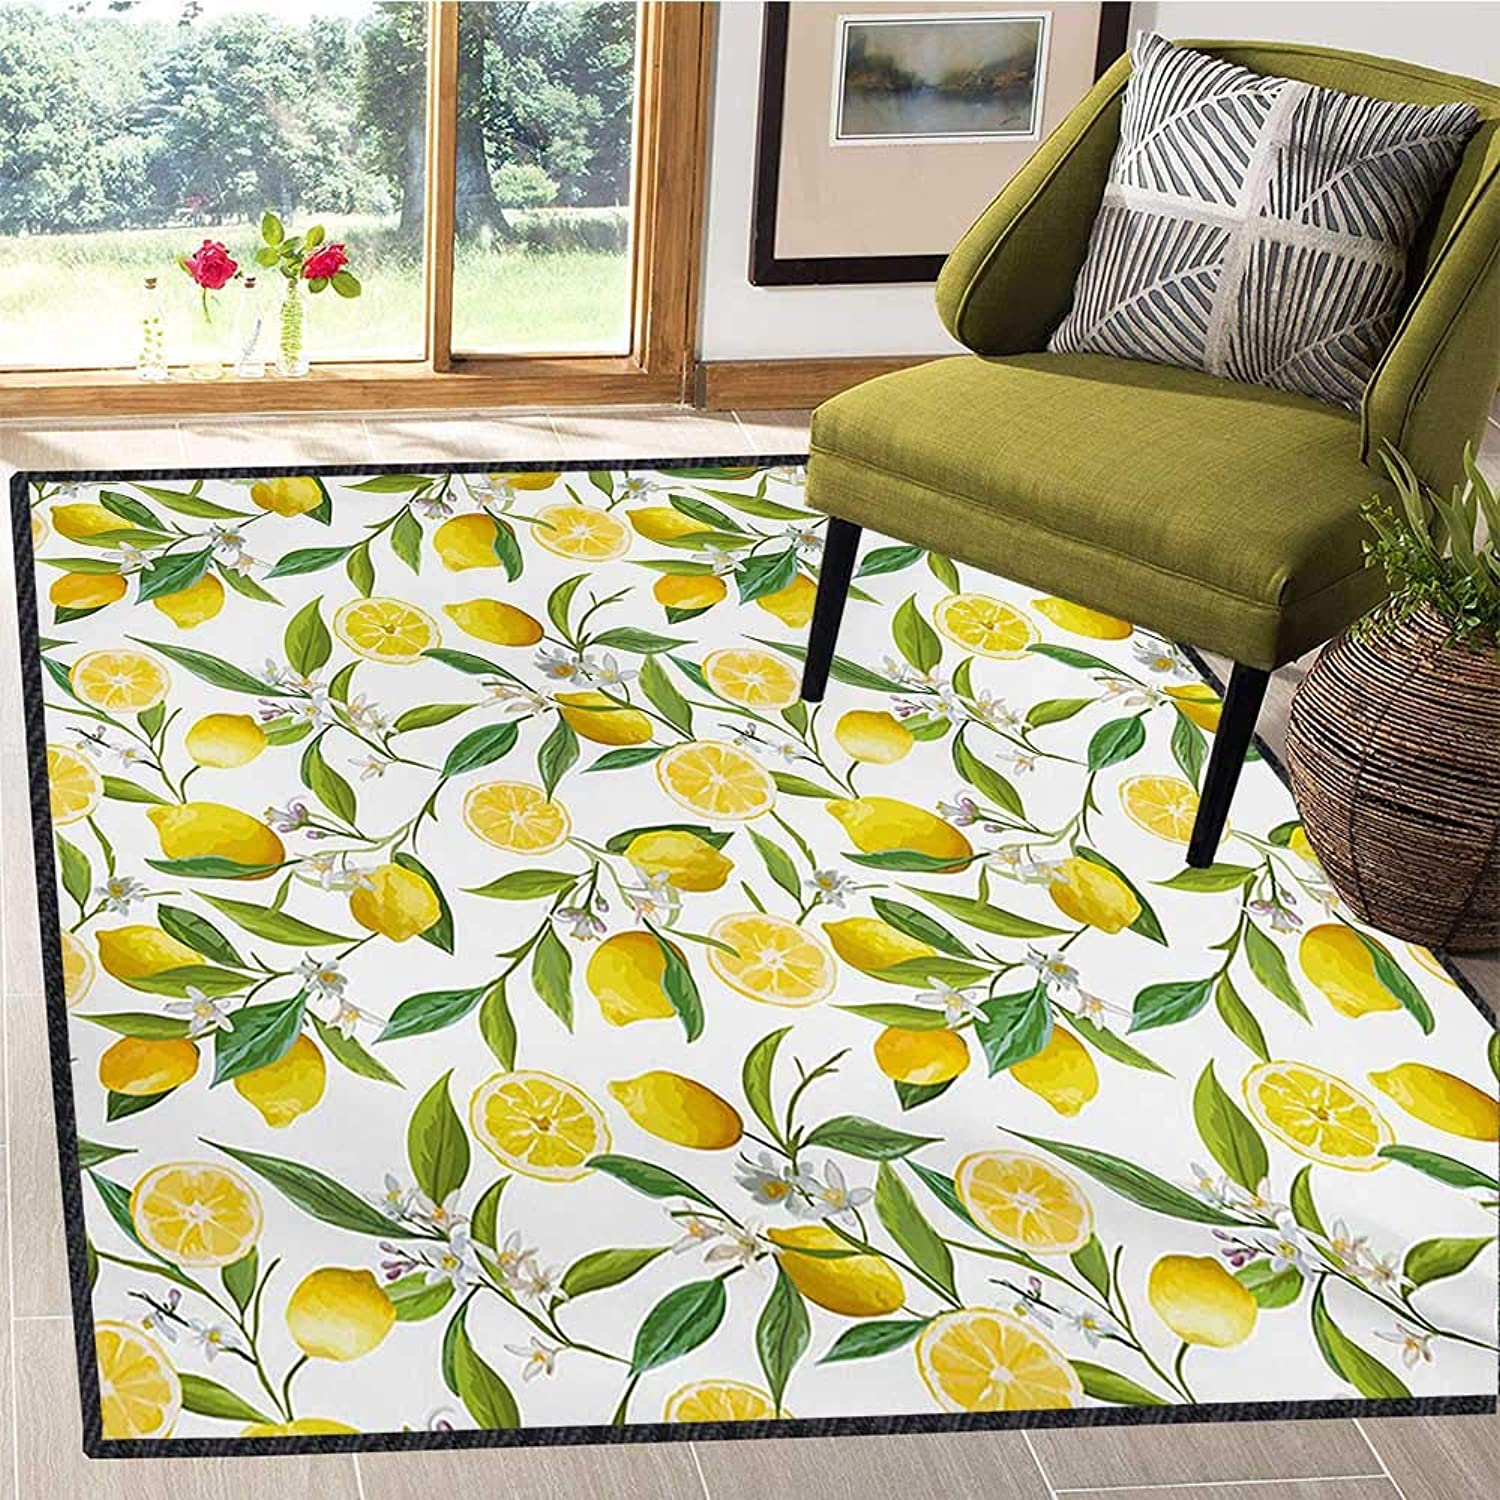 Nature, Door Mats for Inside, Exotic Lemon Tree Branches Yummy Delicious Kitchen Gardening Design, Door Mats for Inside 5x8 Ft Fern Green Yellow White